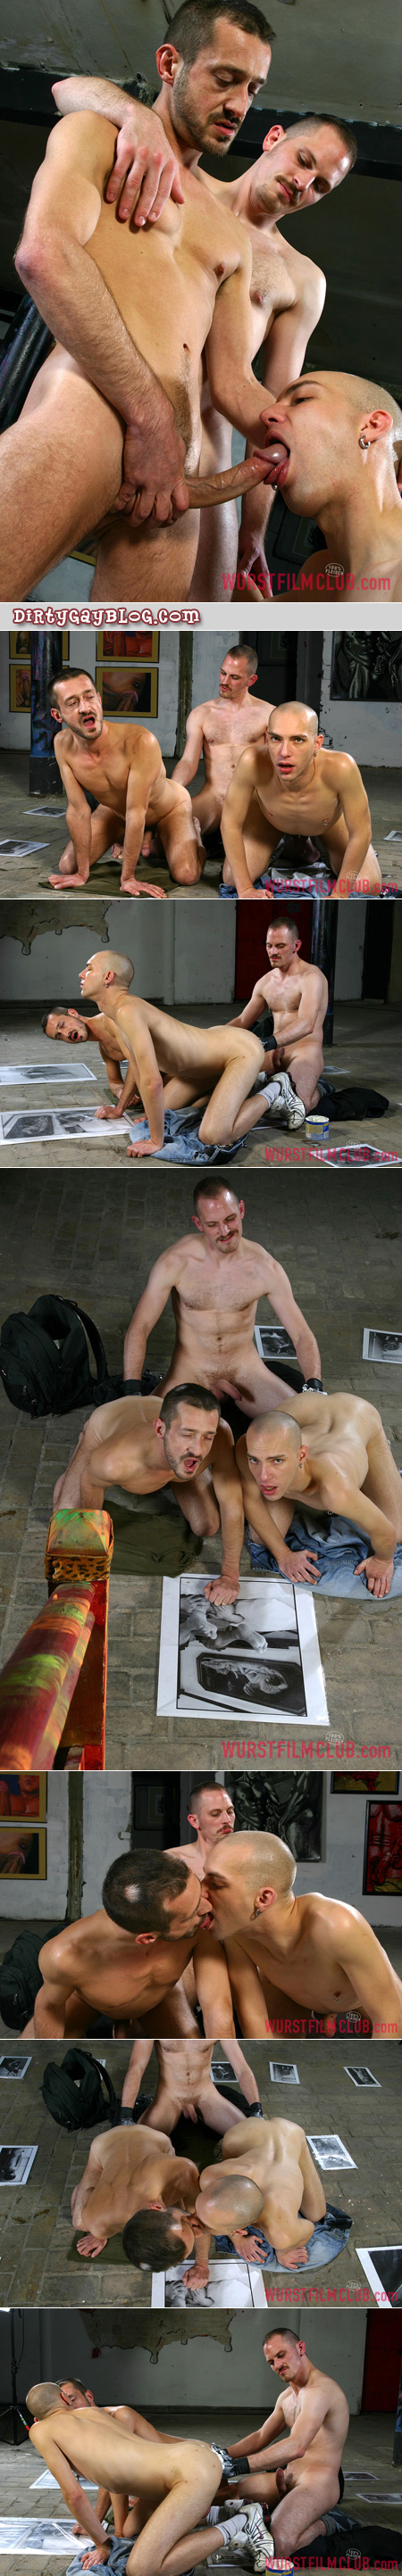 Two German men being anally fisted by another man with a mustache at the same time.